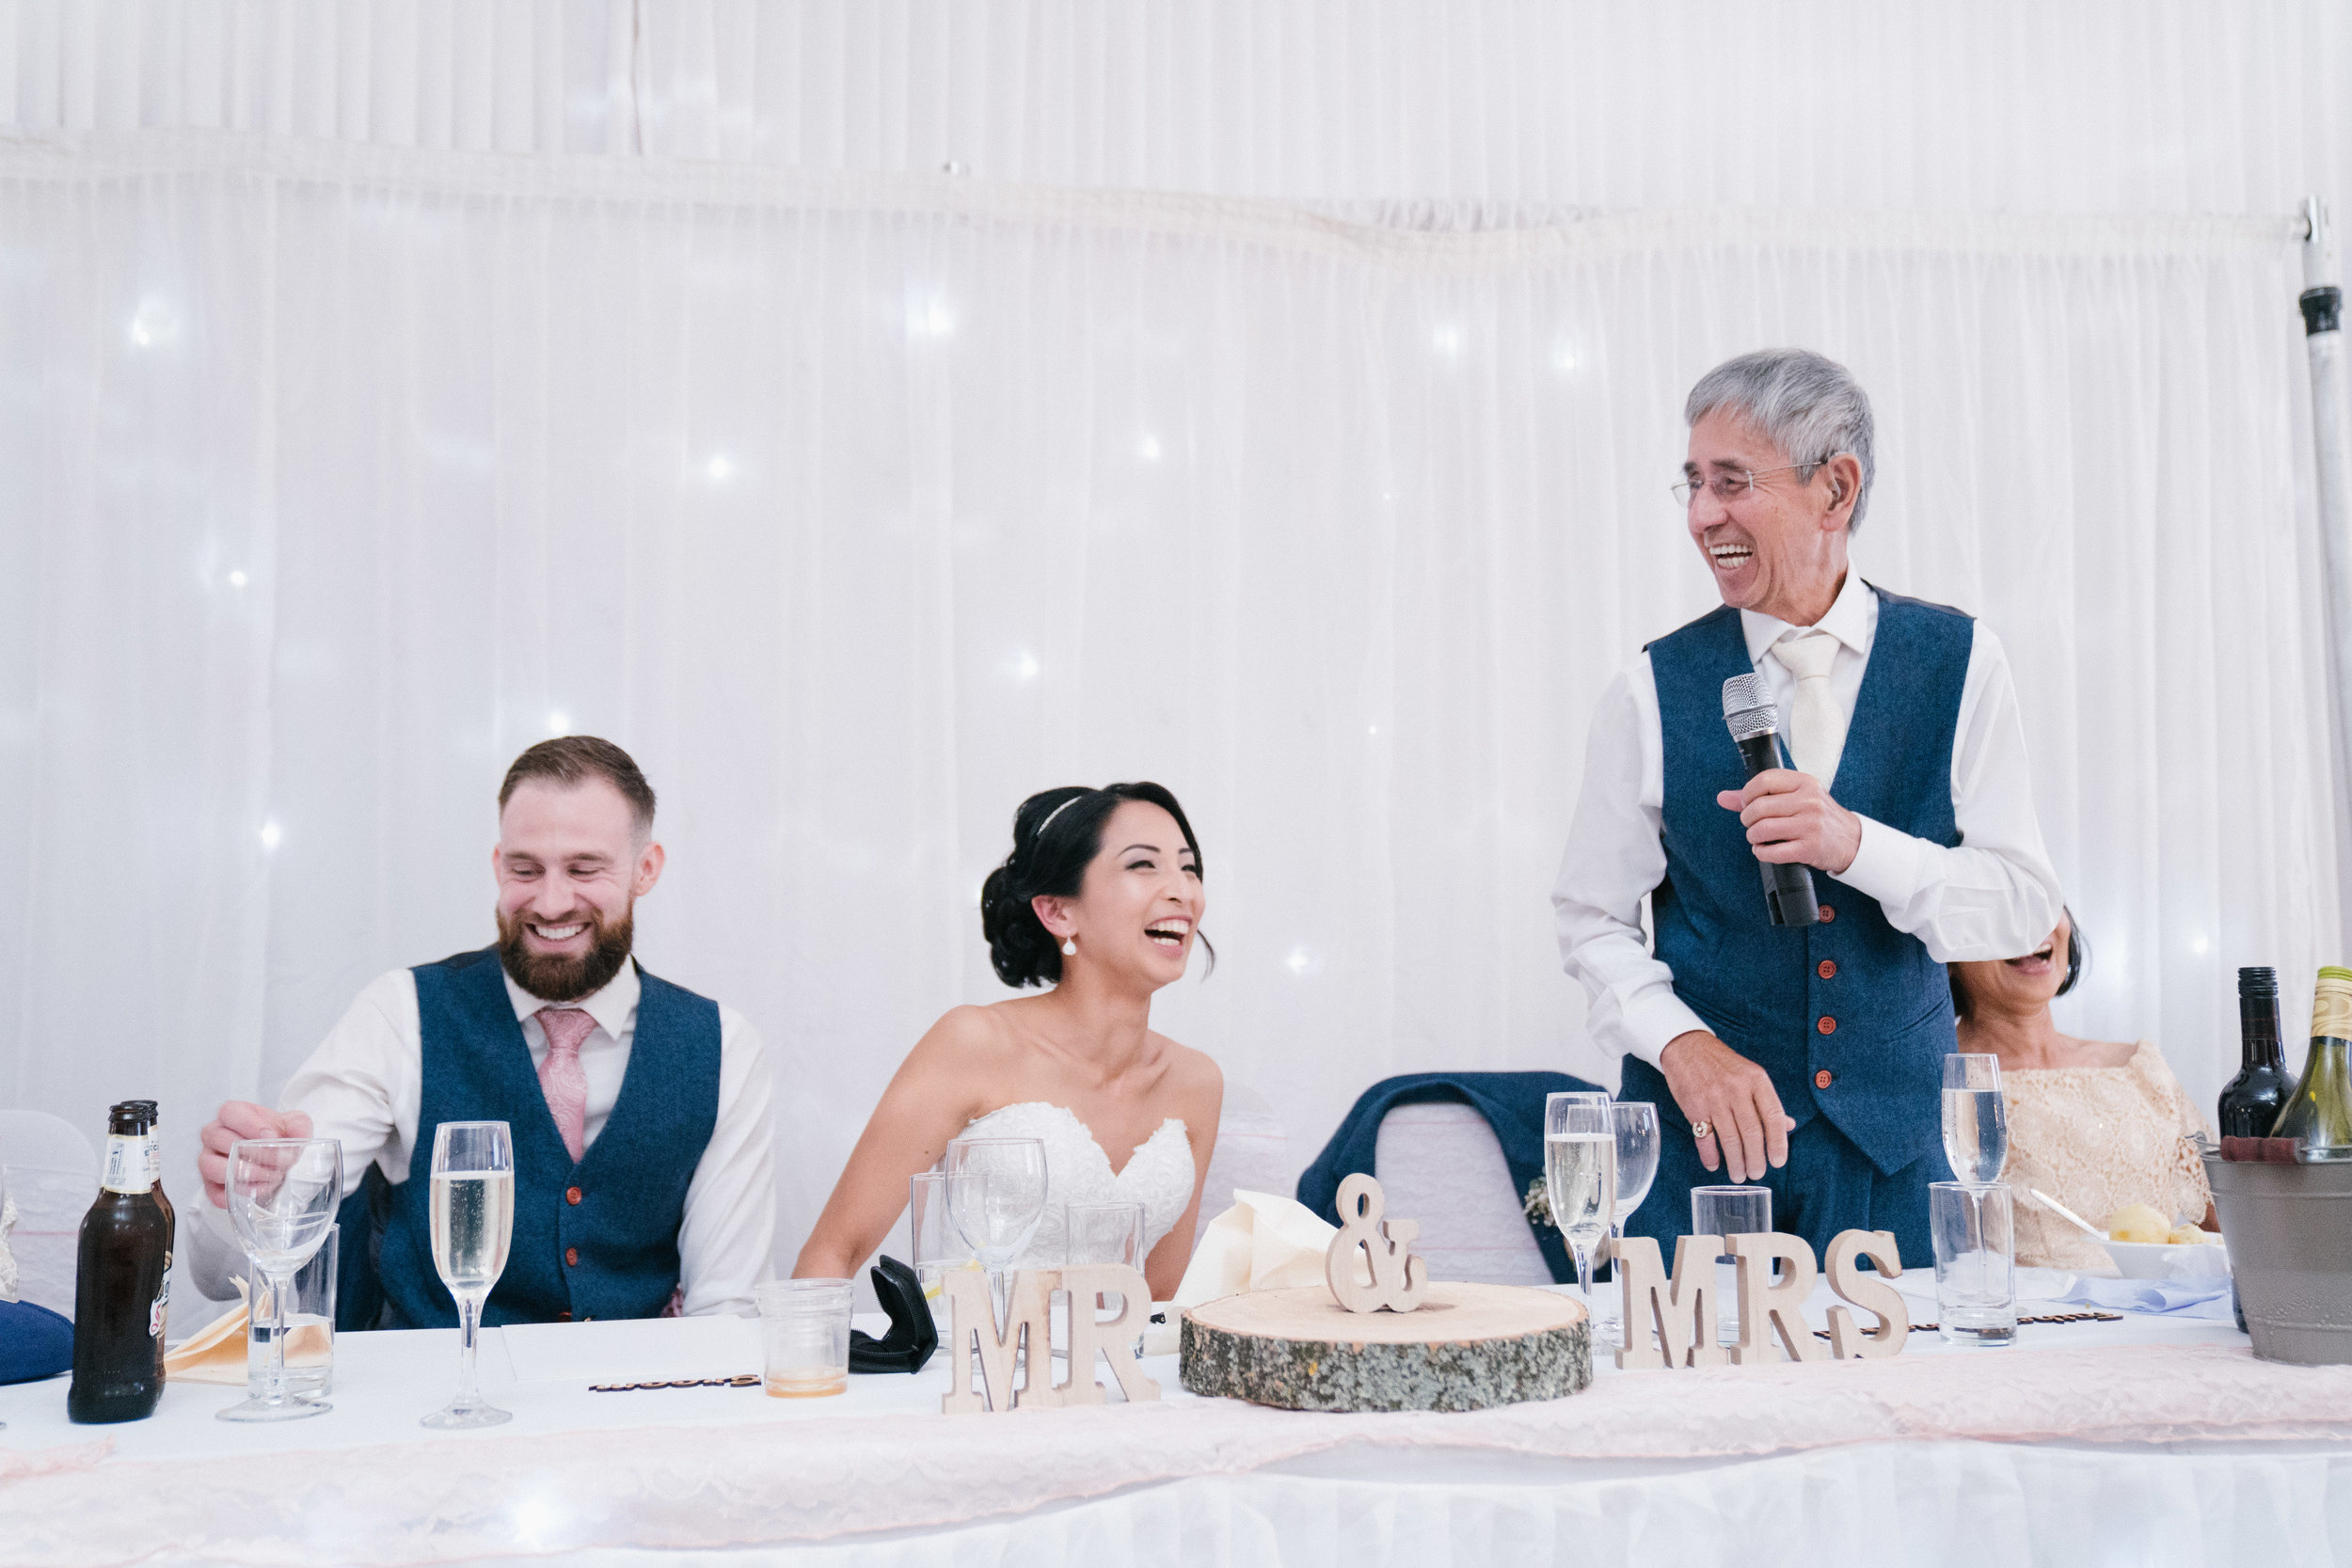 bedfordshire-london-wedding-photographer-videographer-53